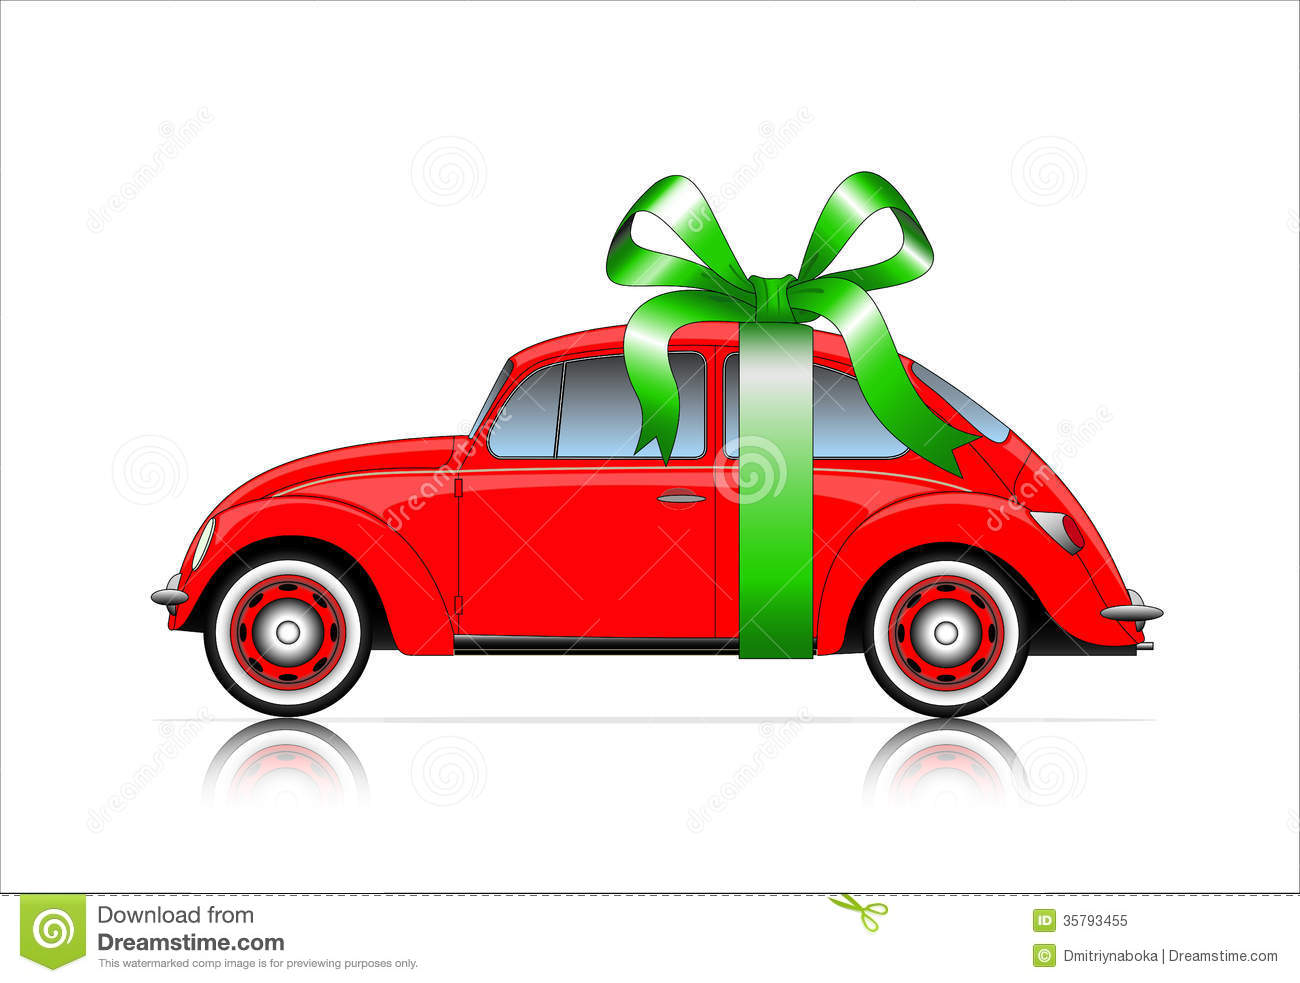 Expensive Car For Sale Or Gift Royalty Free Stock Image: Compact Red Car With Ribbon Royalty Free Stock Photo